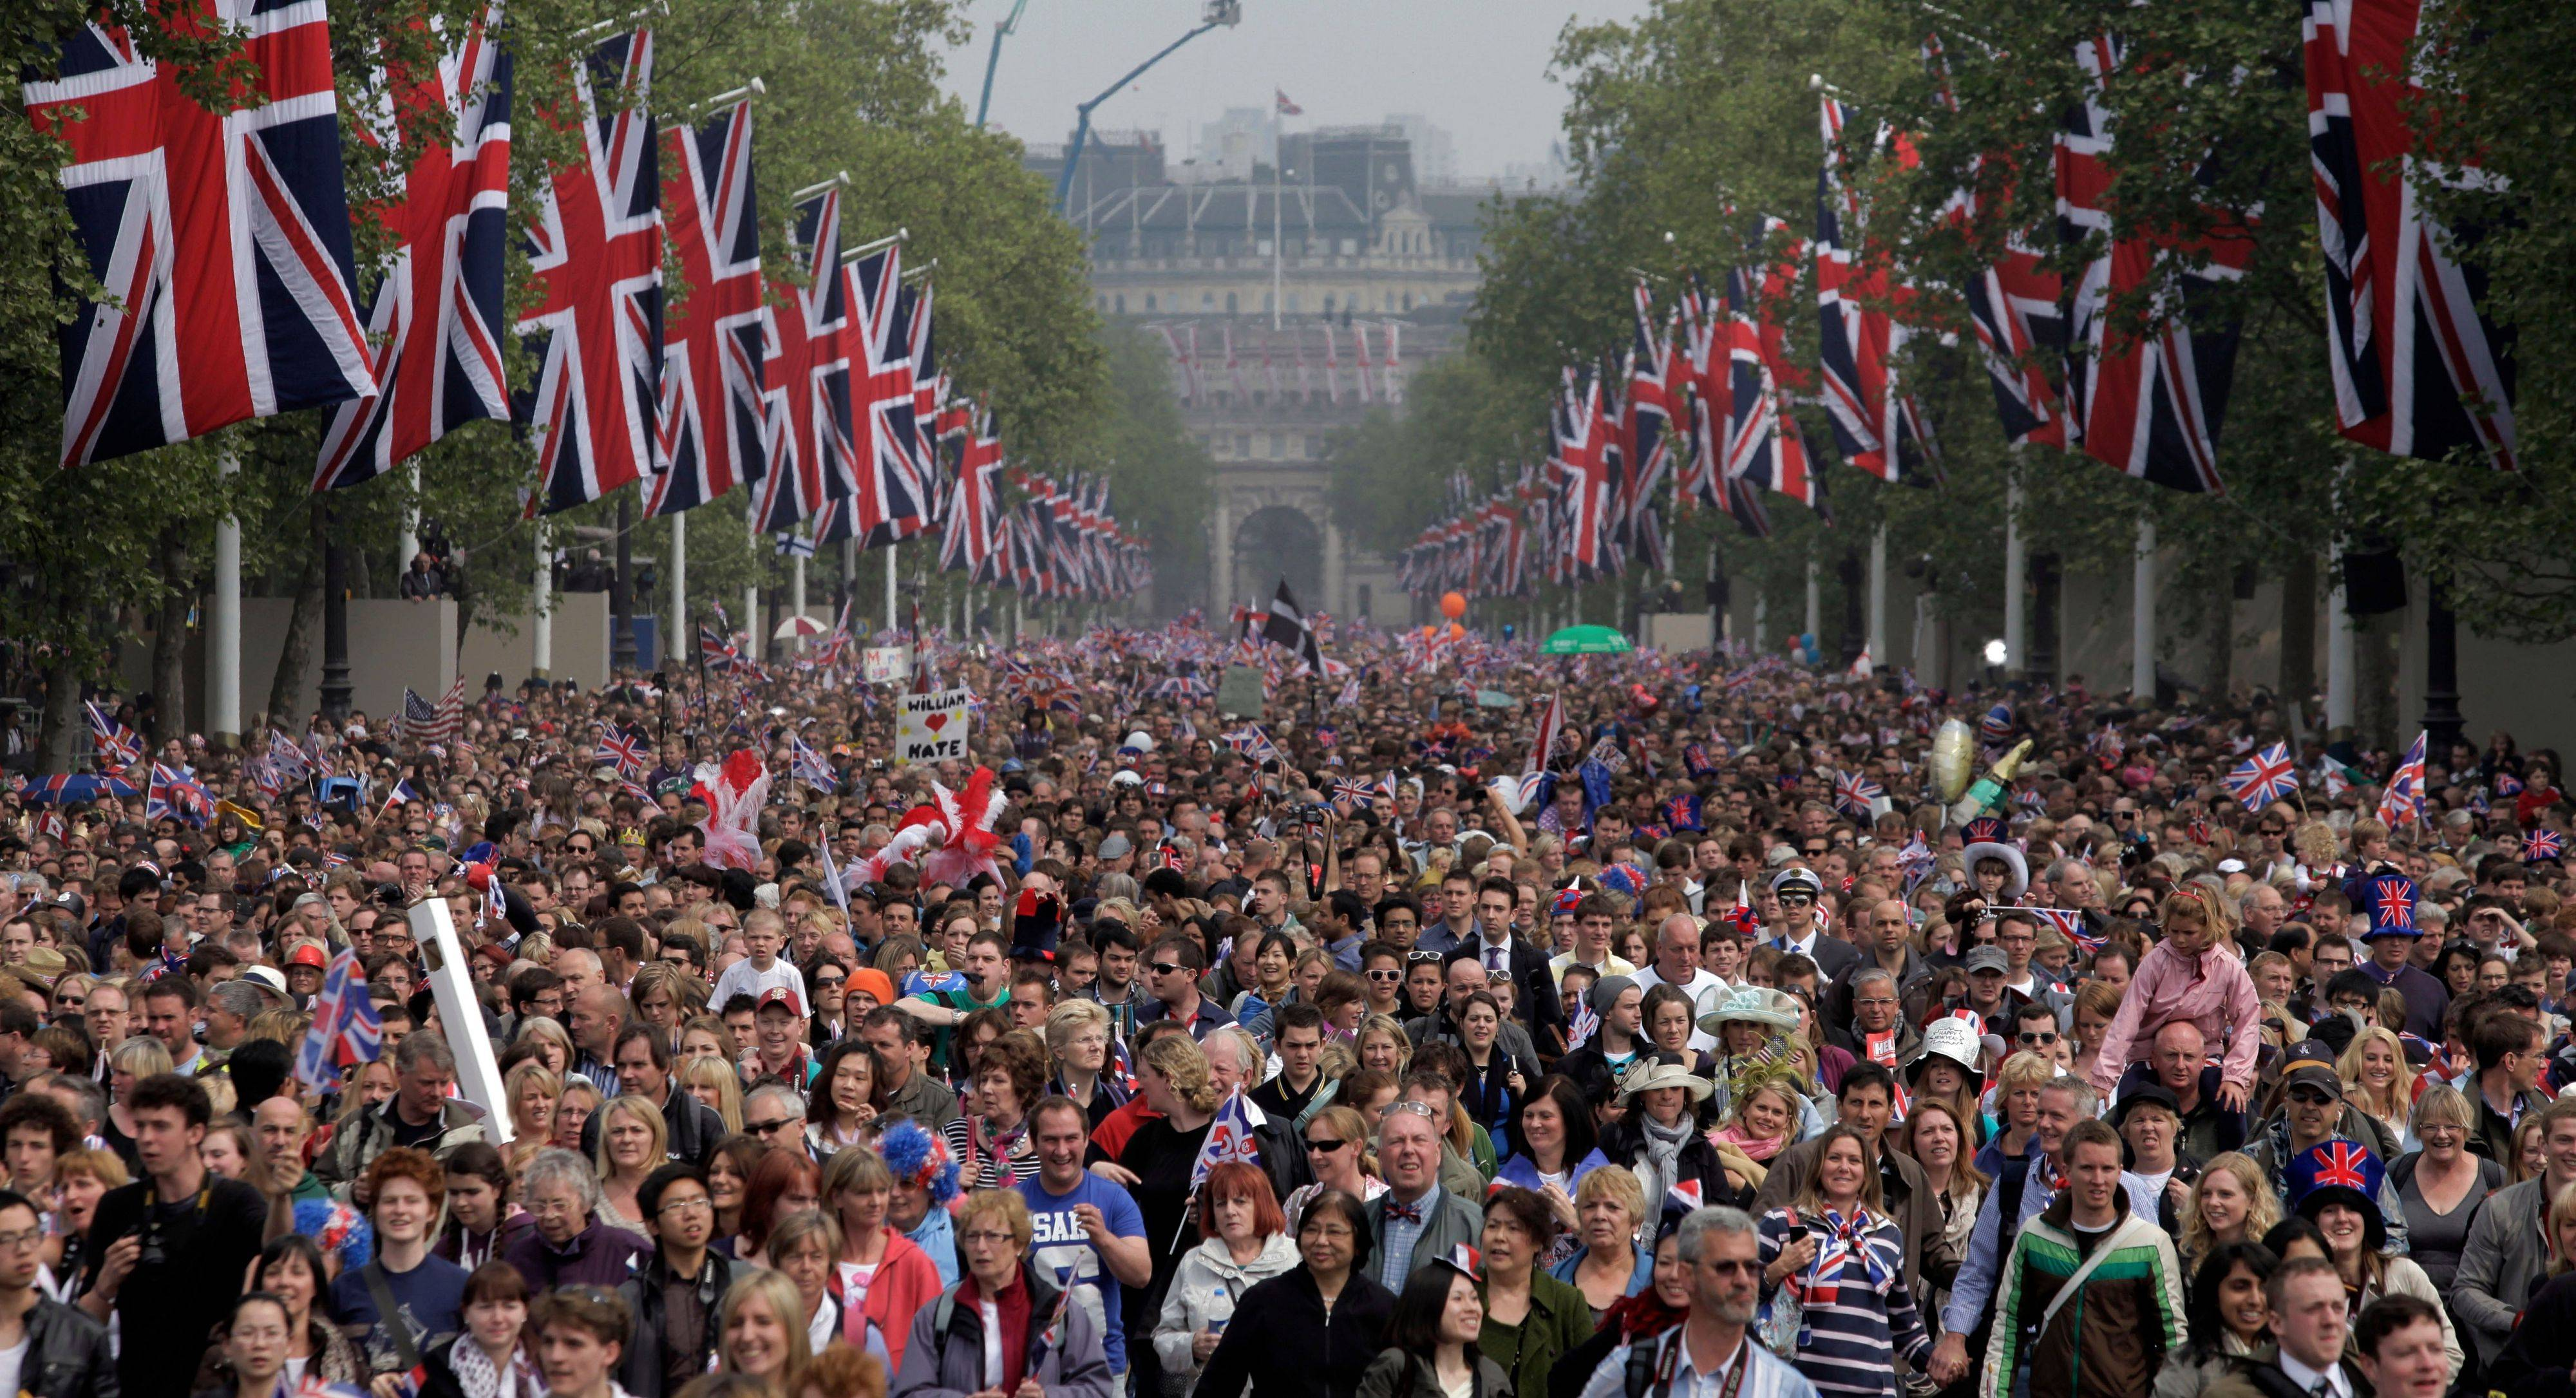 Spectators make their way down the Mall to Buckingham Palace after the Royal Wedding for Britain's Prince William and his wife Kate, Duchess of Cambridge in London Friday, April, 29, 2011.